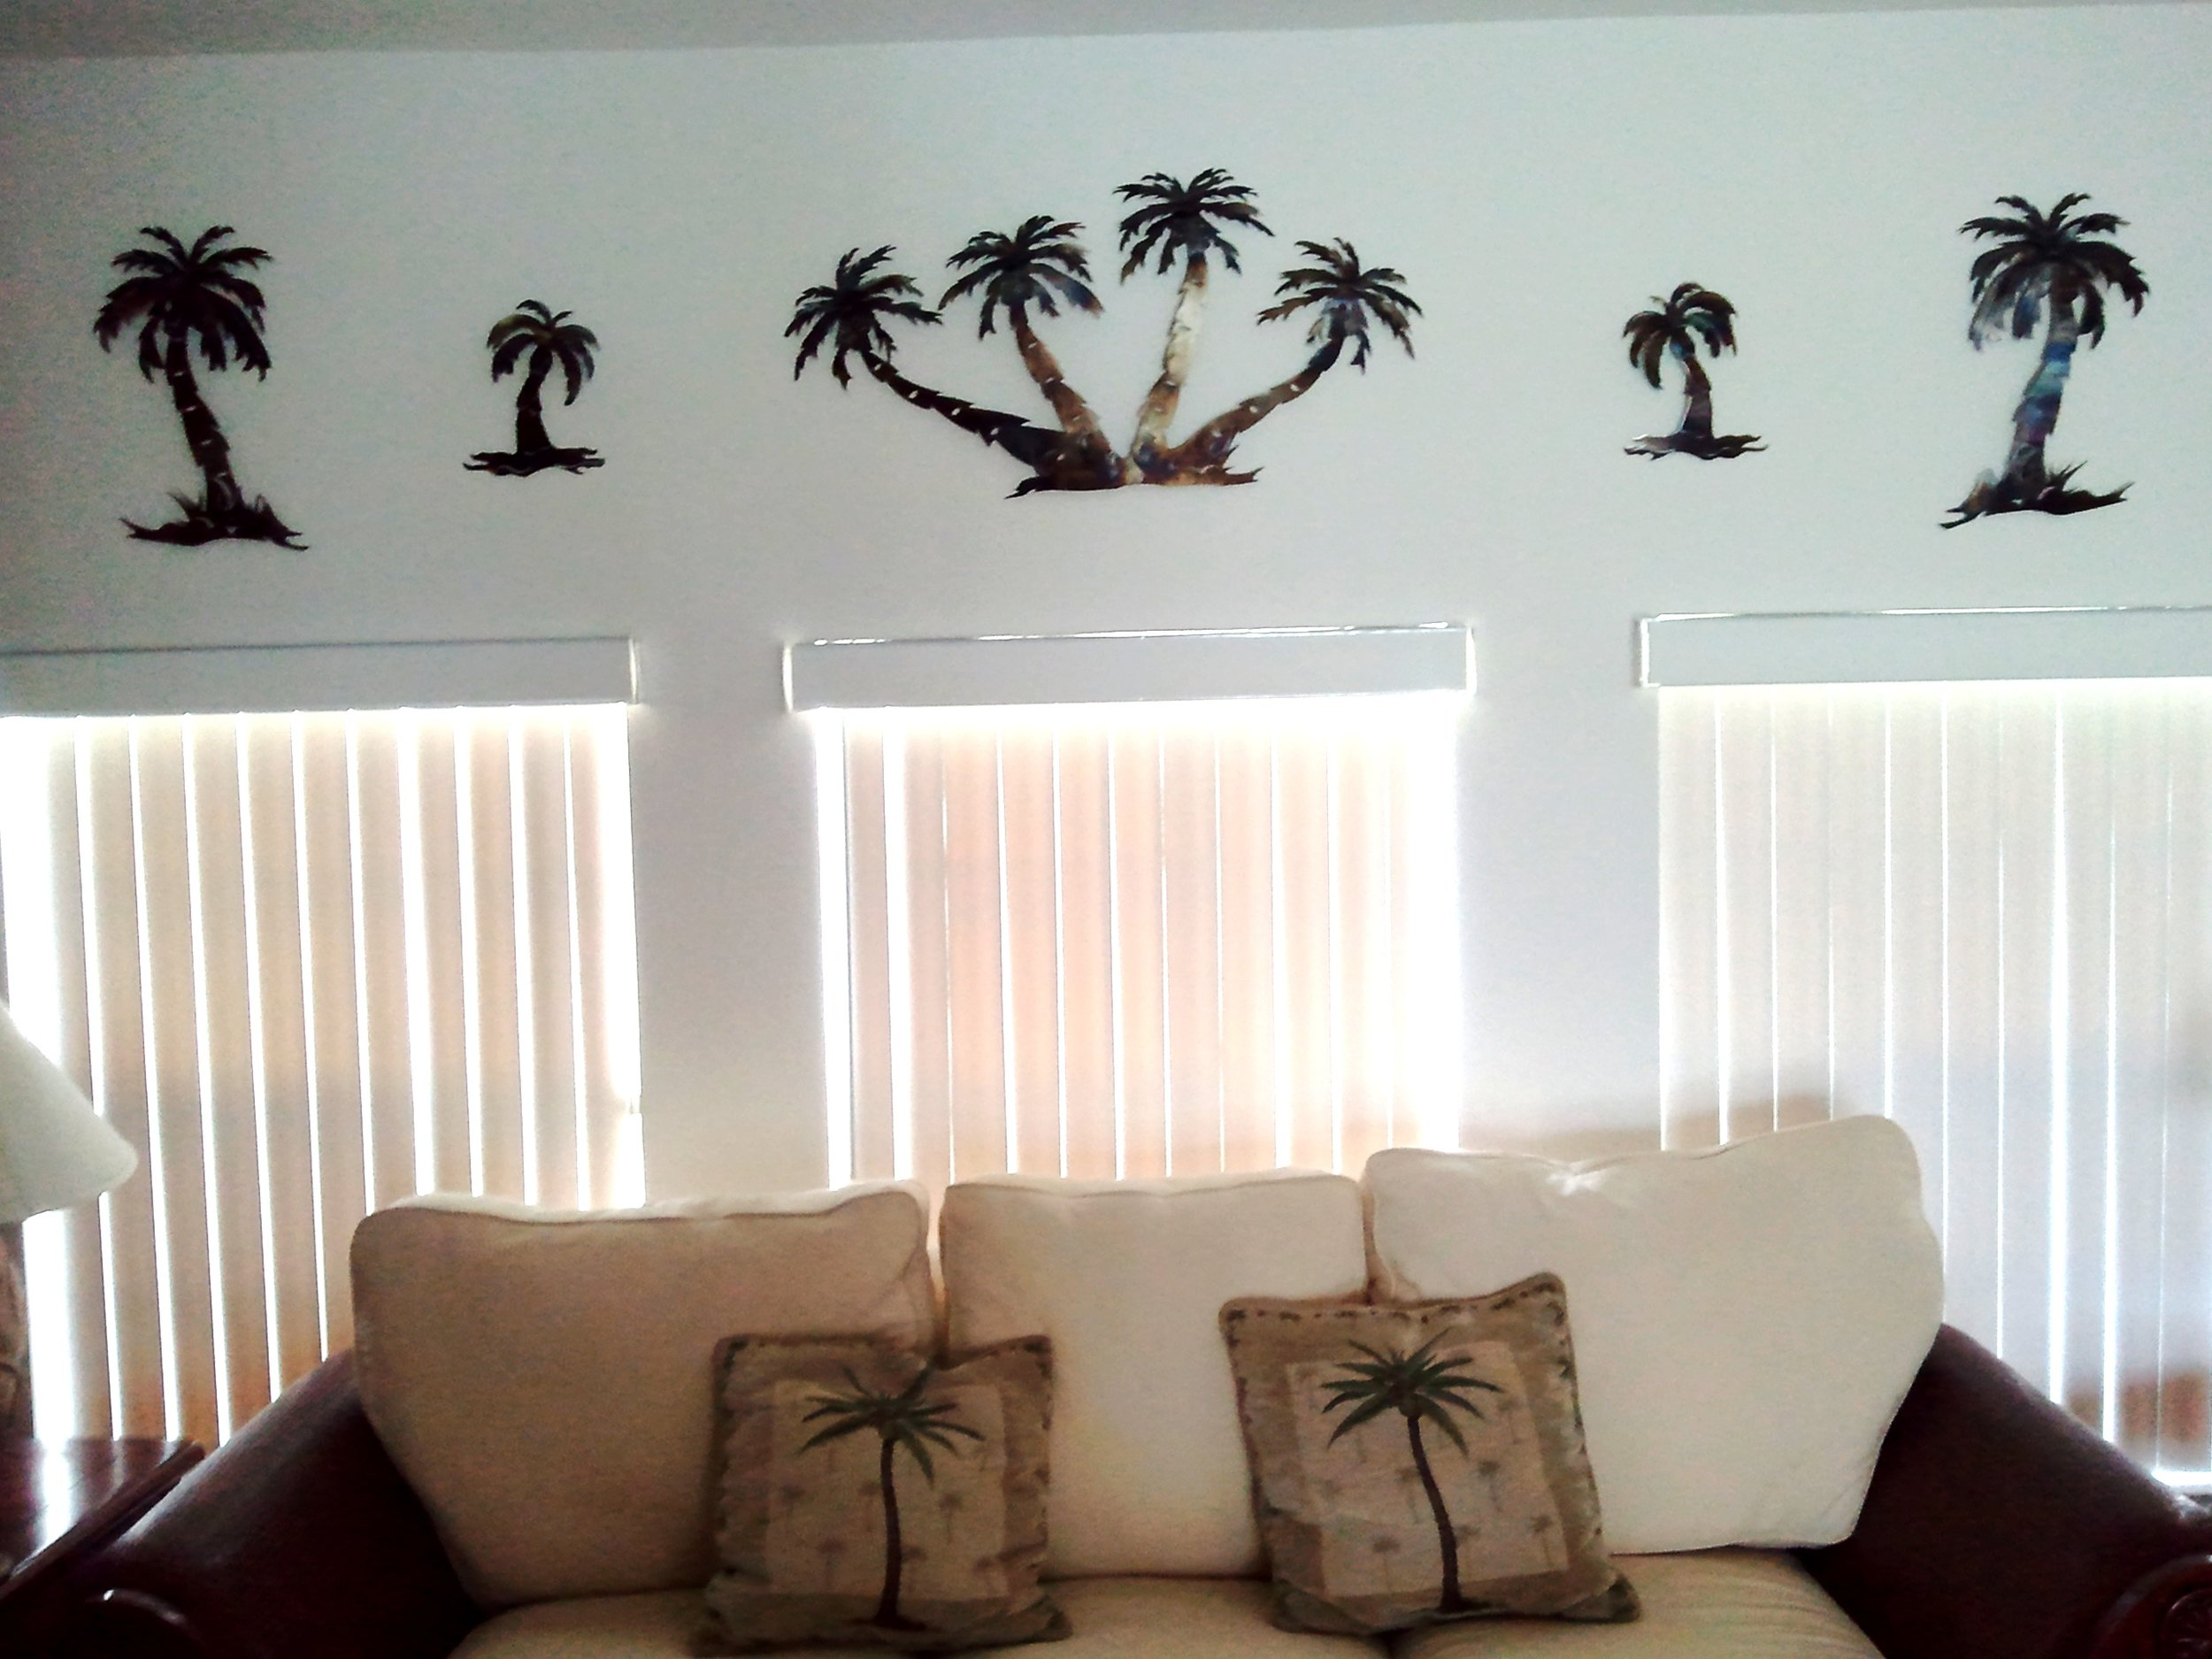 1B  PALMS IN FAMLY ROOM.jpg